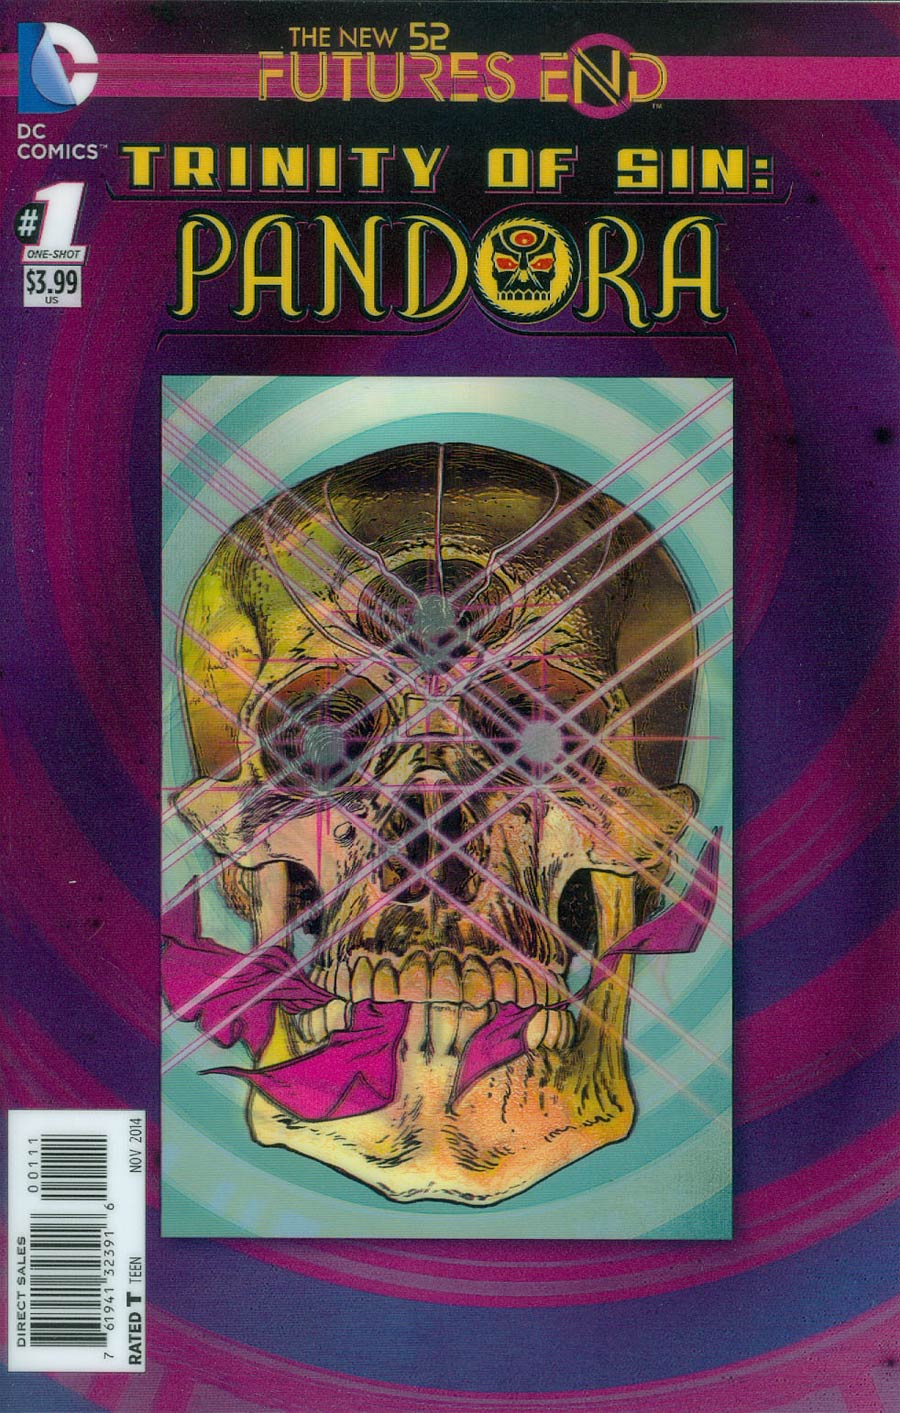 Trinity Of Sin Pandora Futures End #1 Cover A 3D Motion Cover